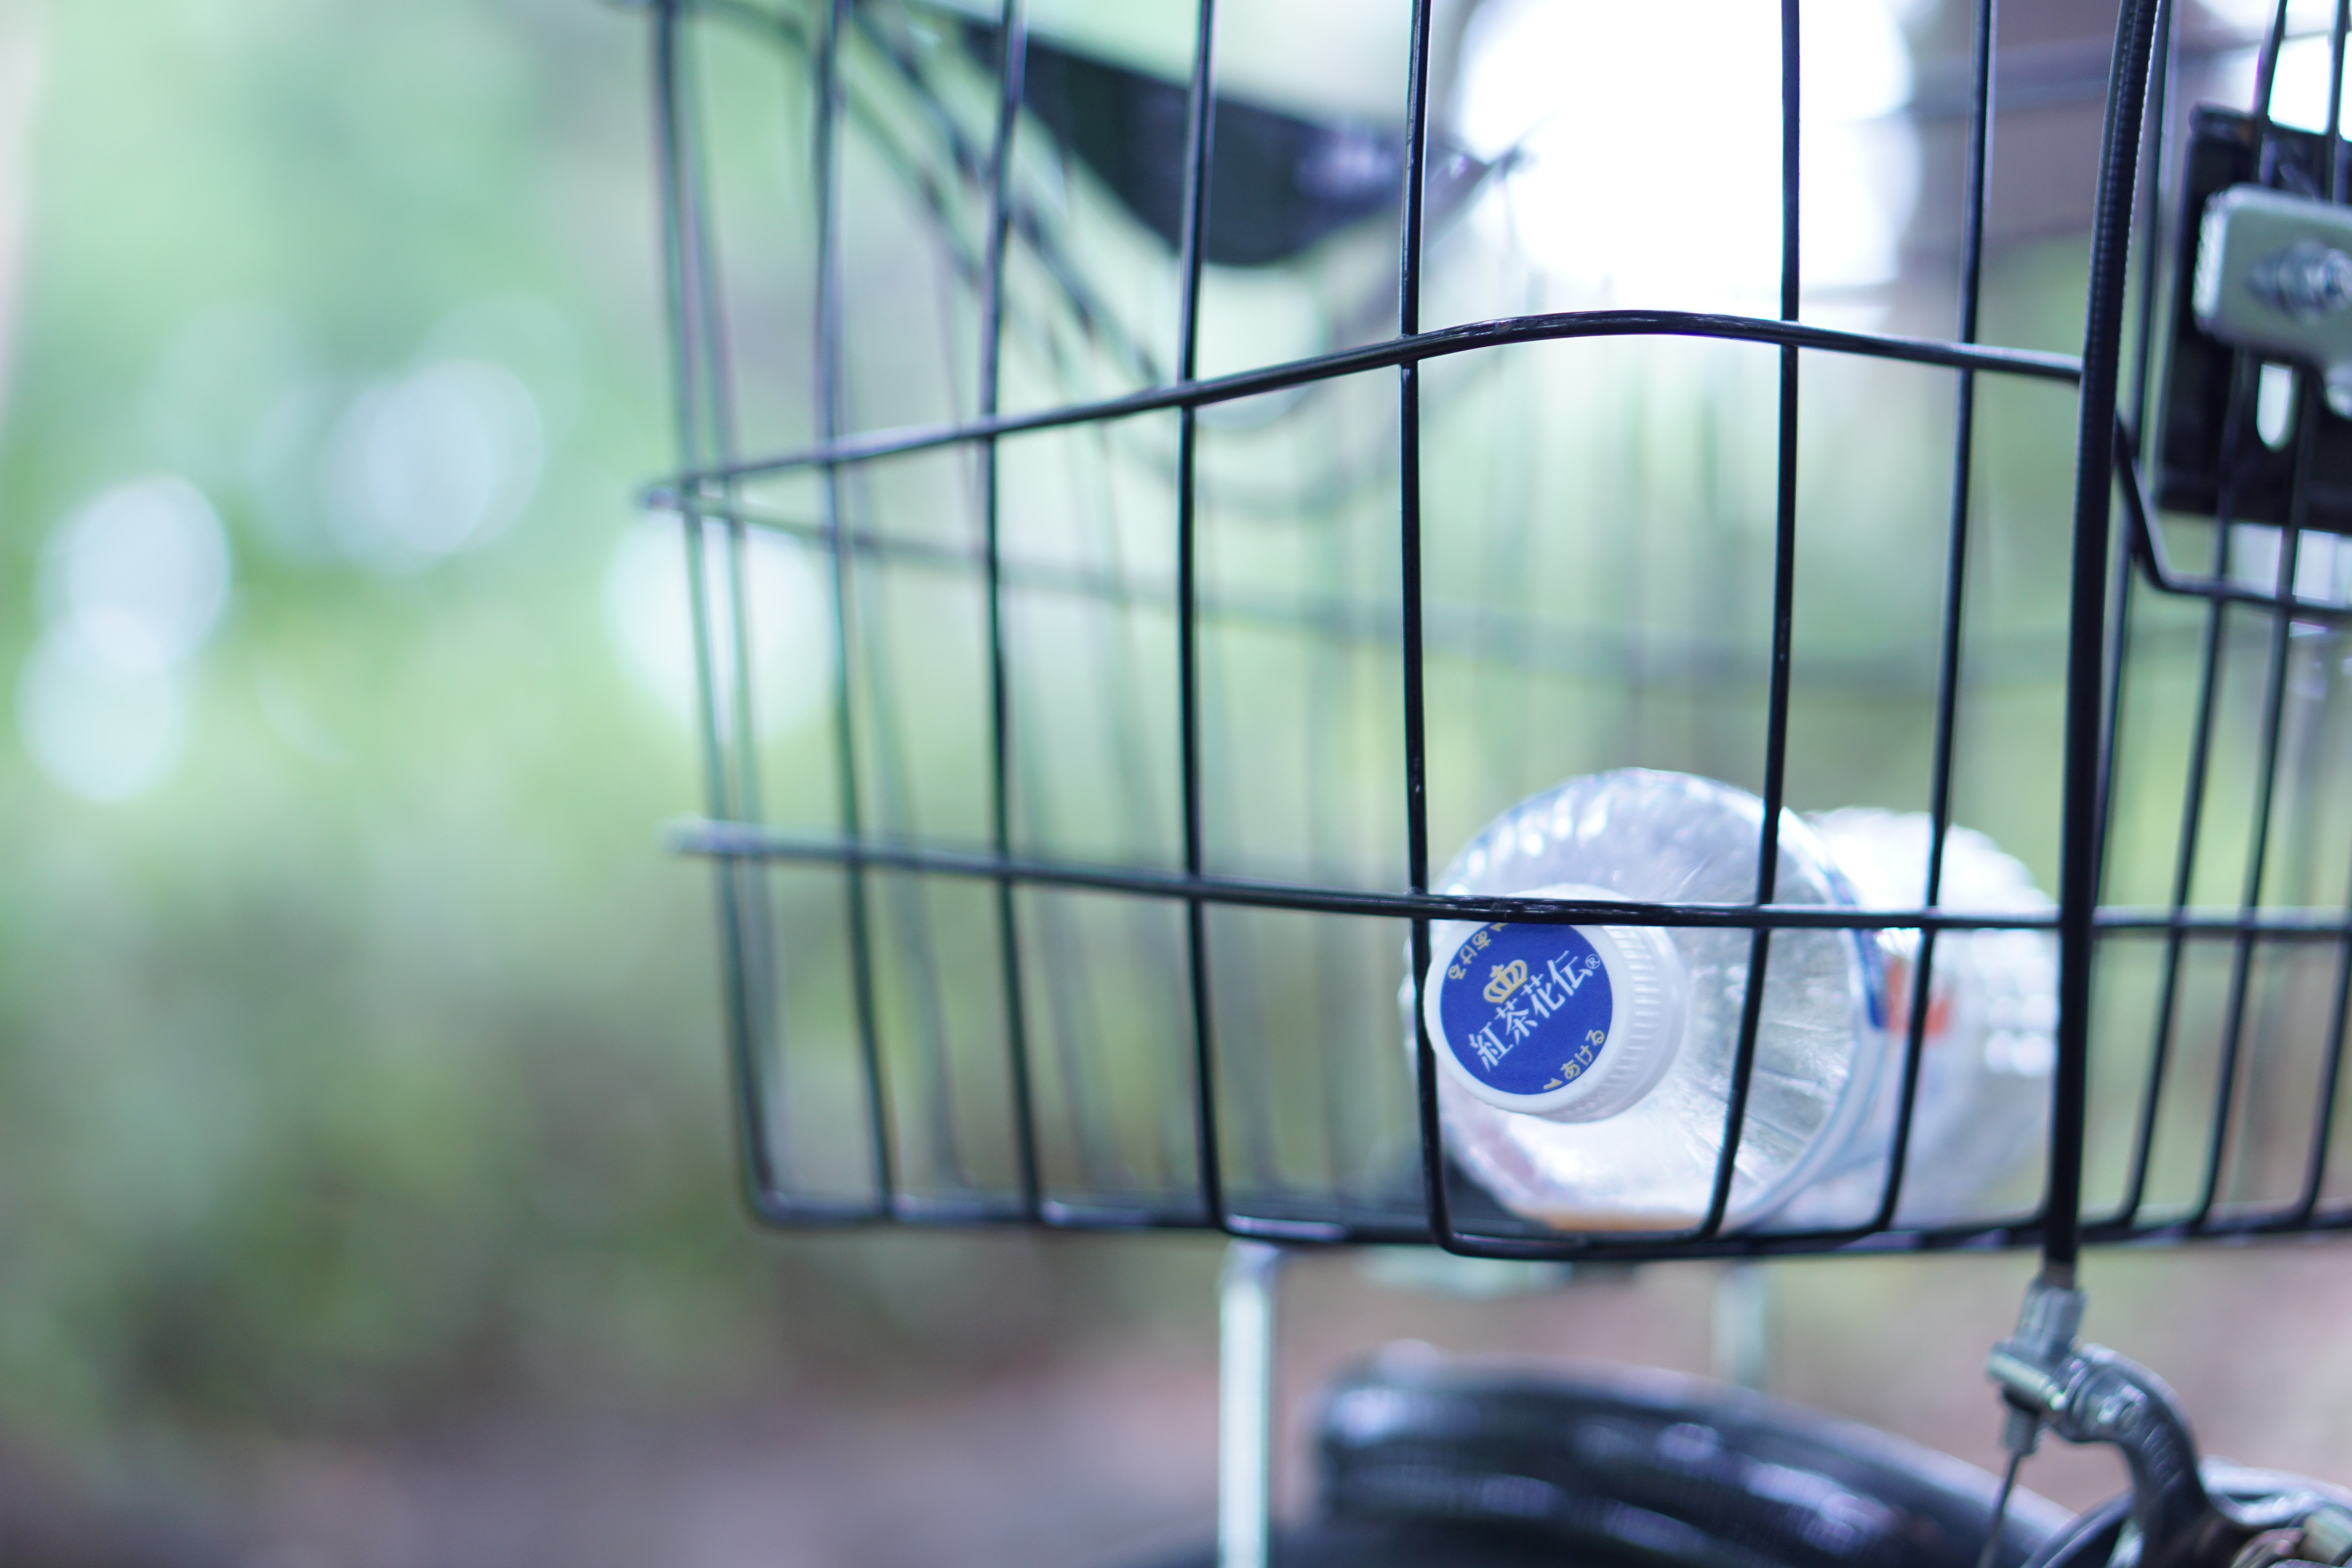 clear plastic bottle in black bicycle basket